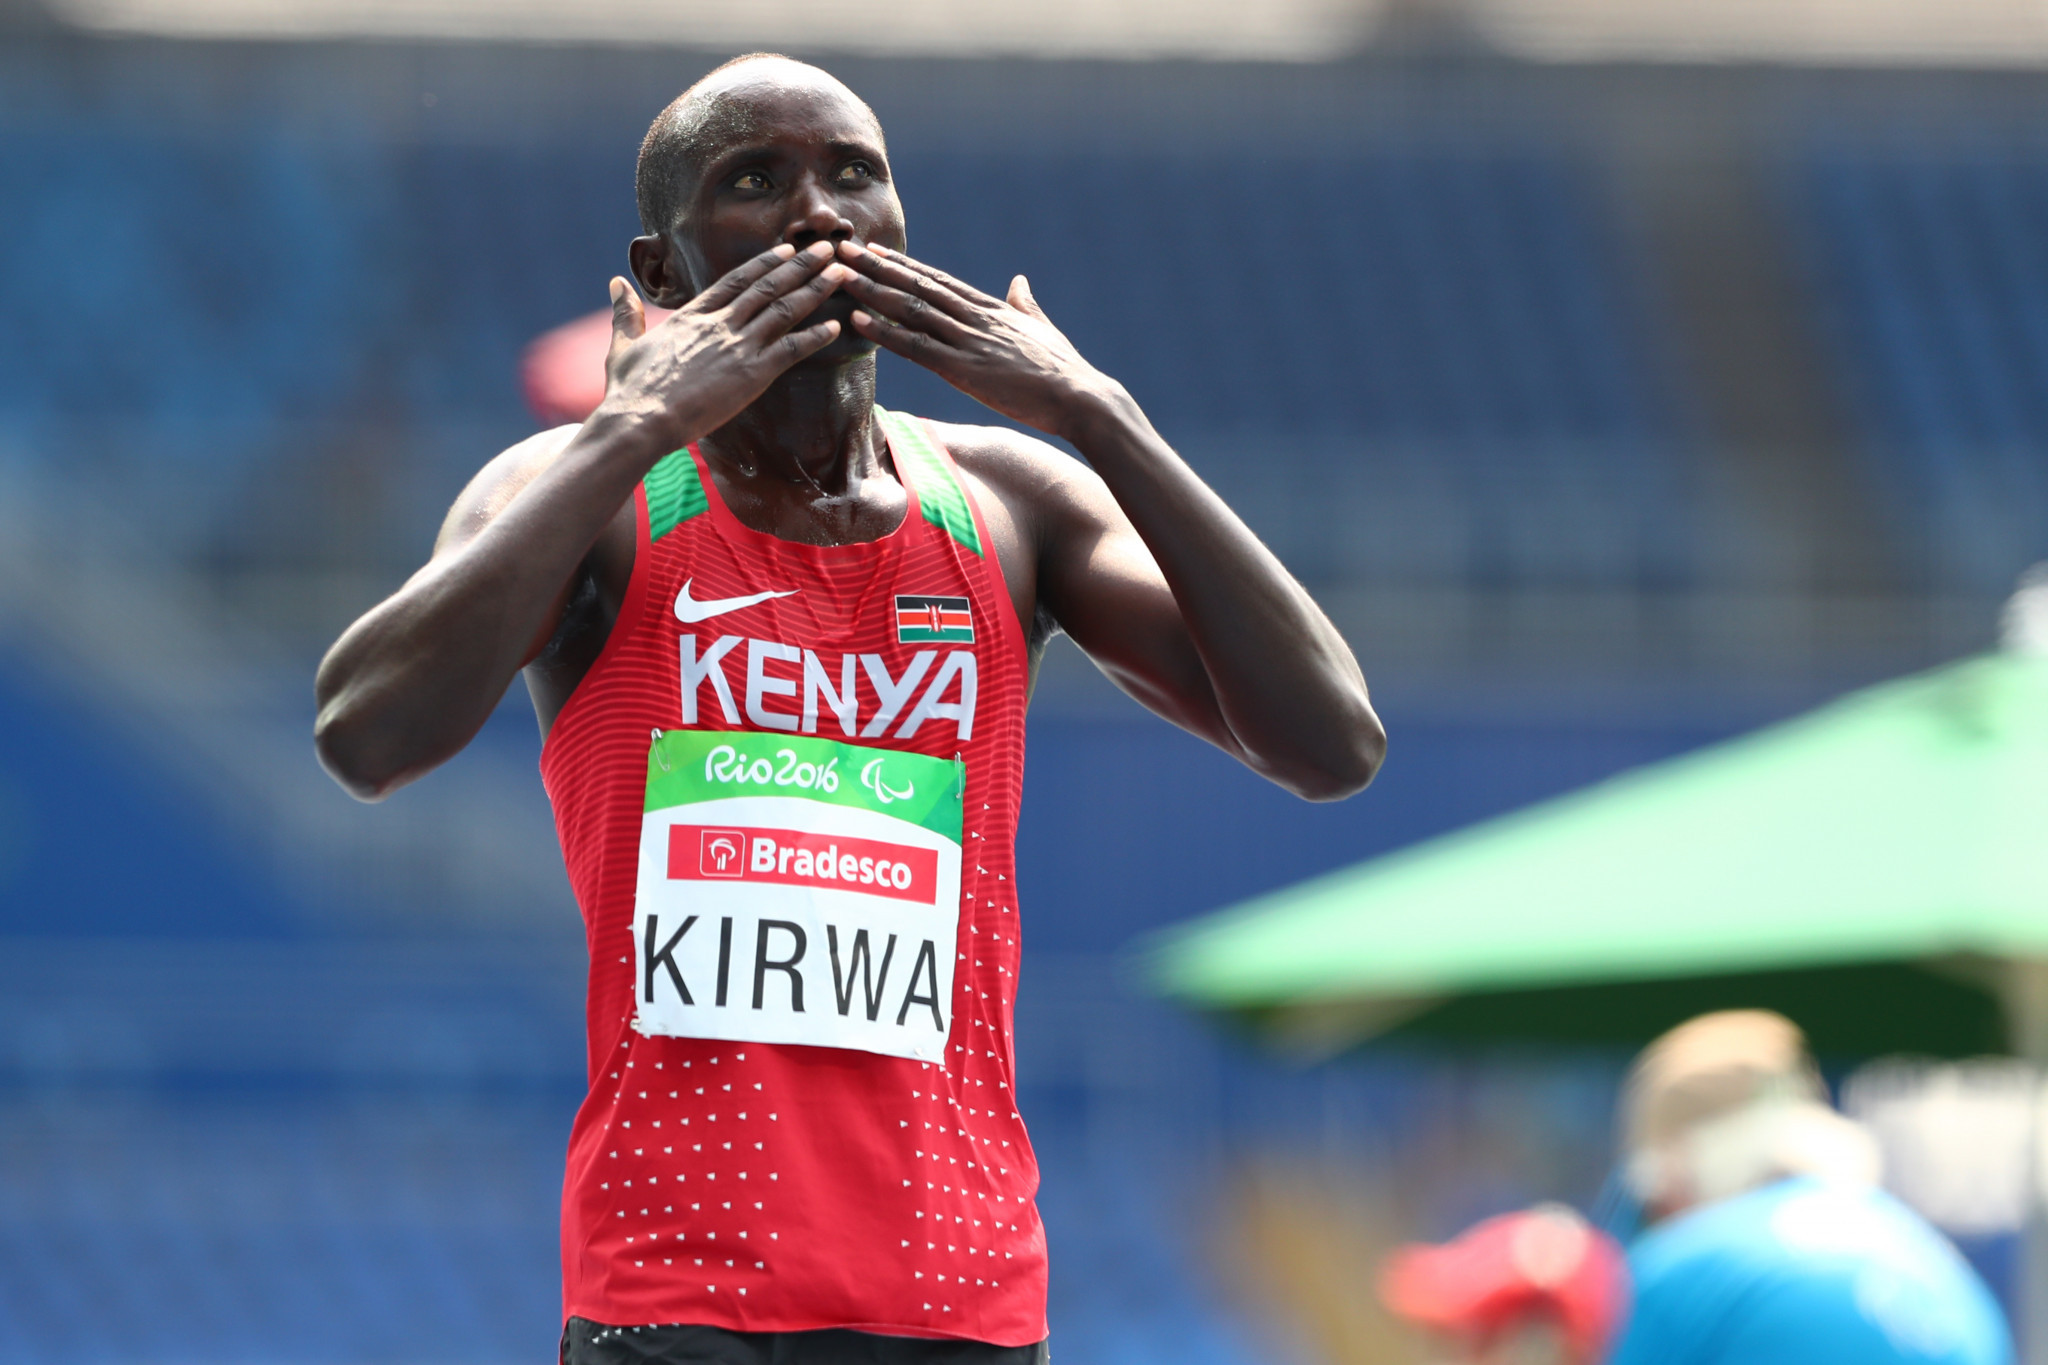 Paralympic 5,000m champion Kirwa to switch to marathon after Tokyo 2020